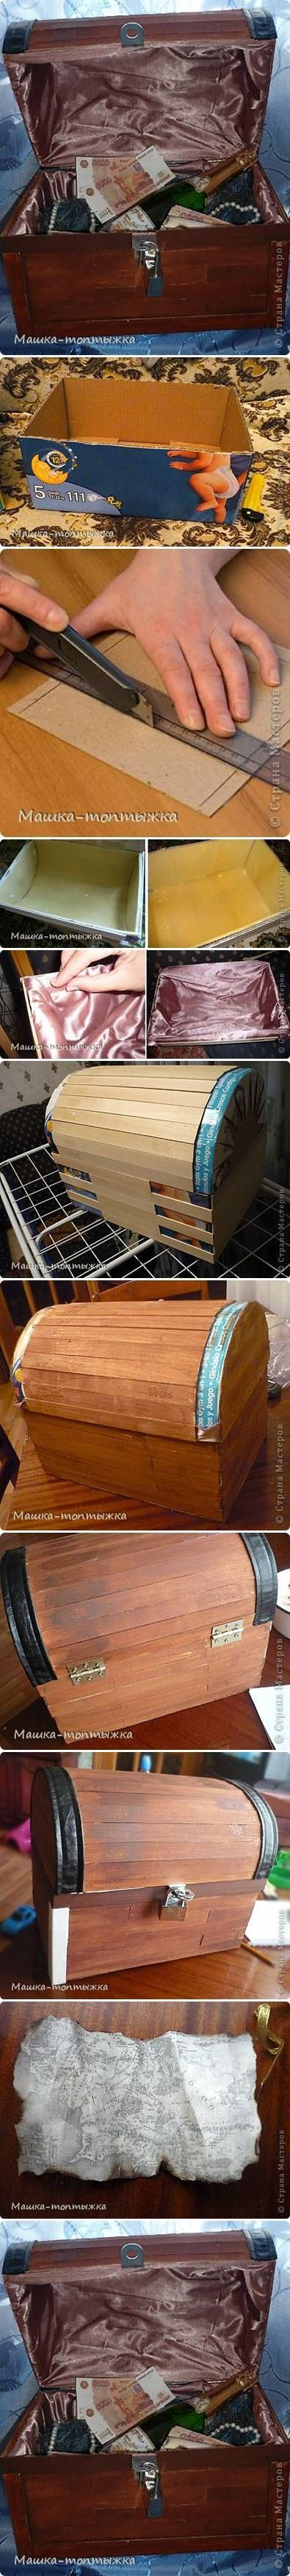 DIY Cardboard Treasure Box: